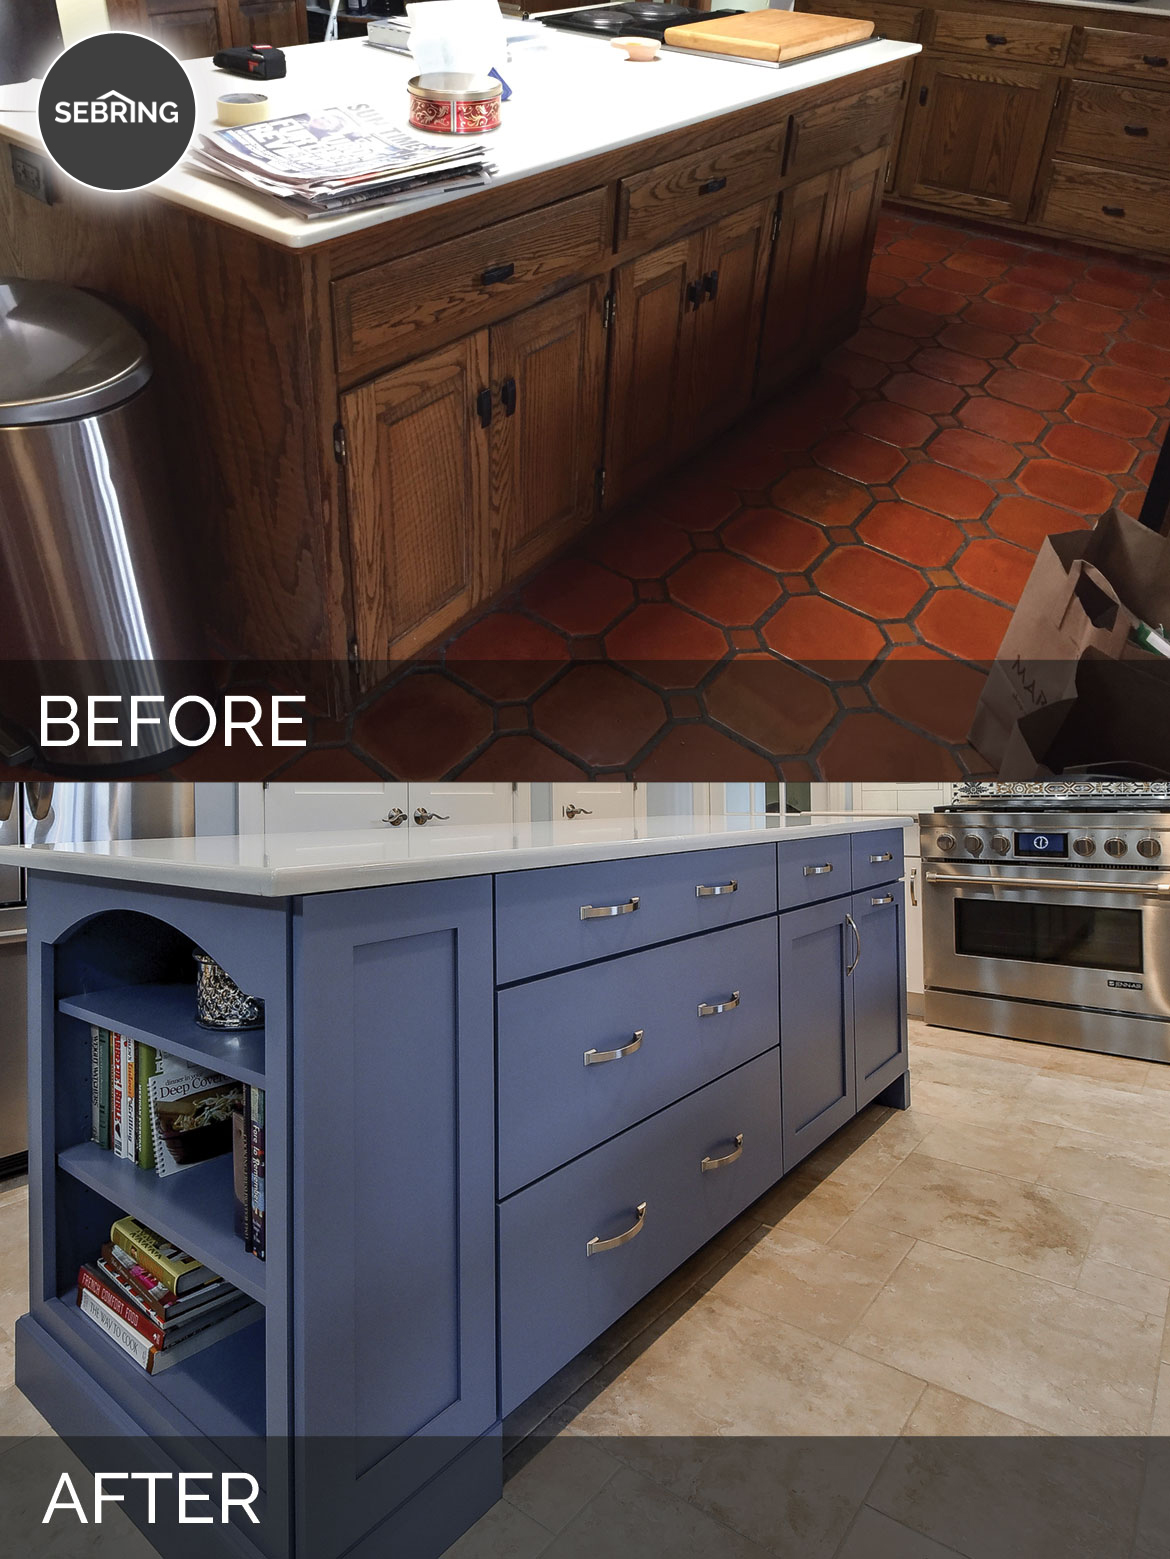 Before & After Kitchen Warrenville - Sebring Design Build